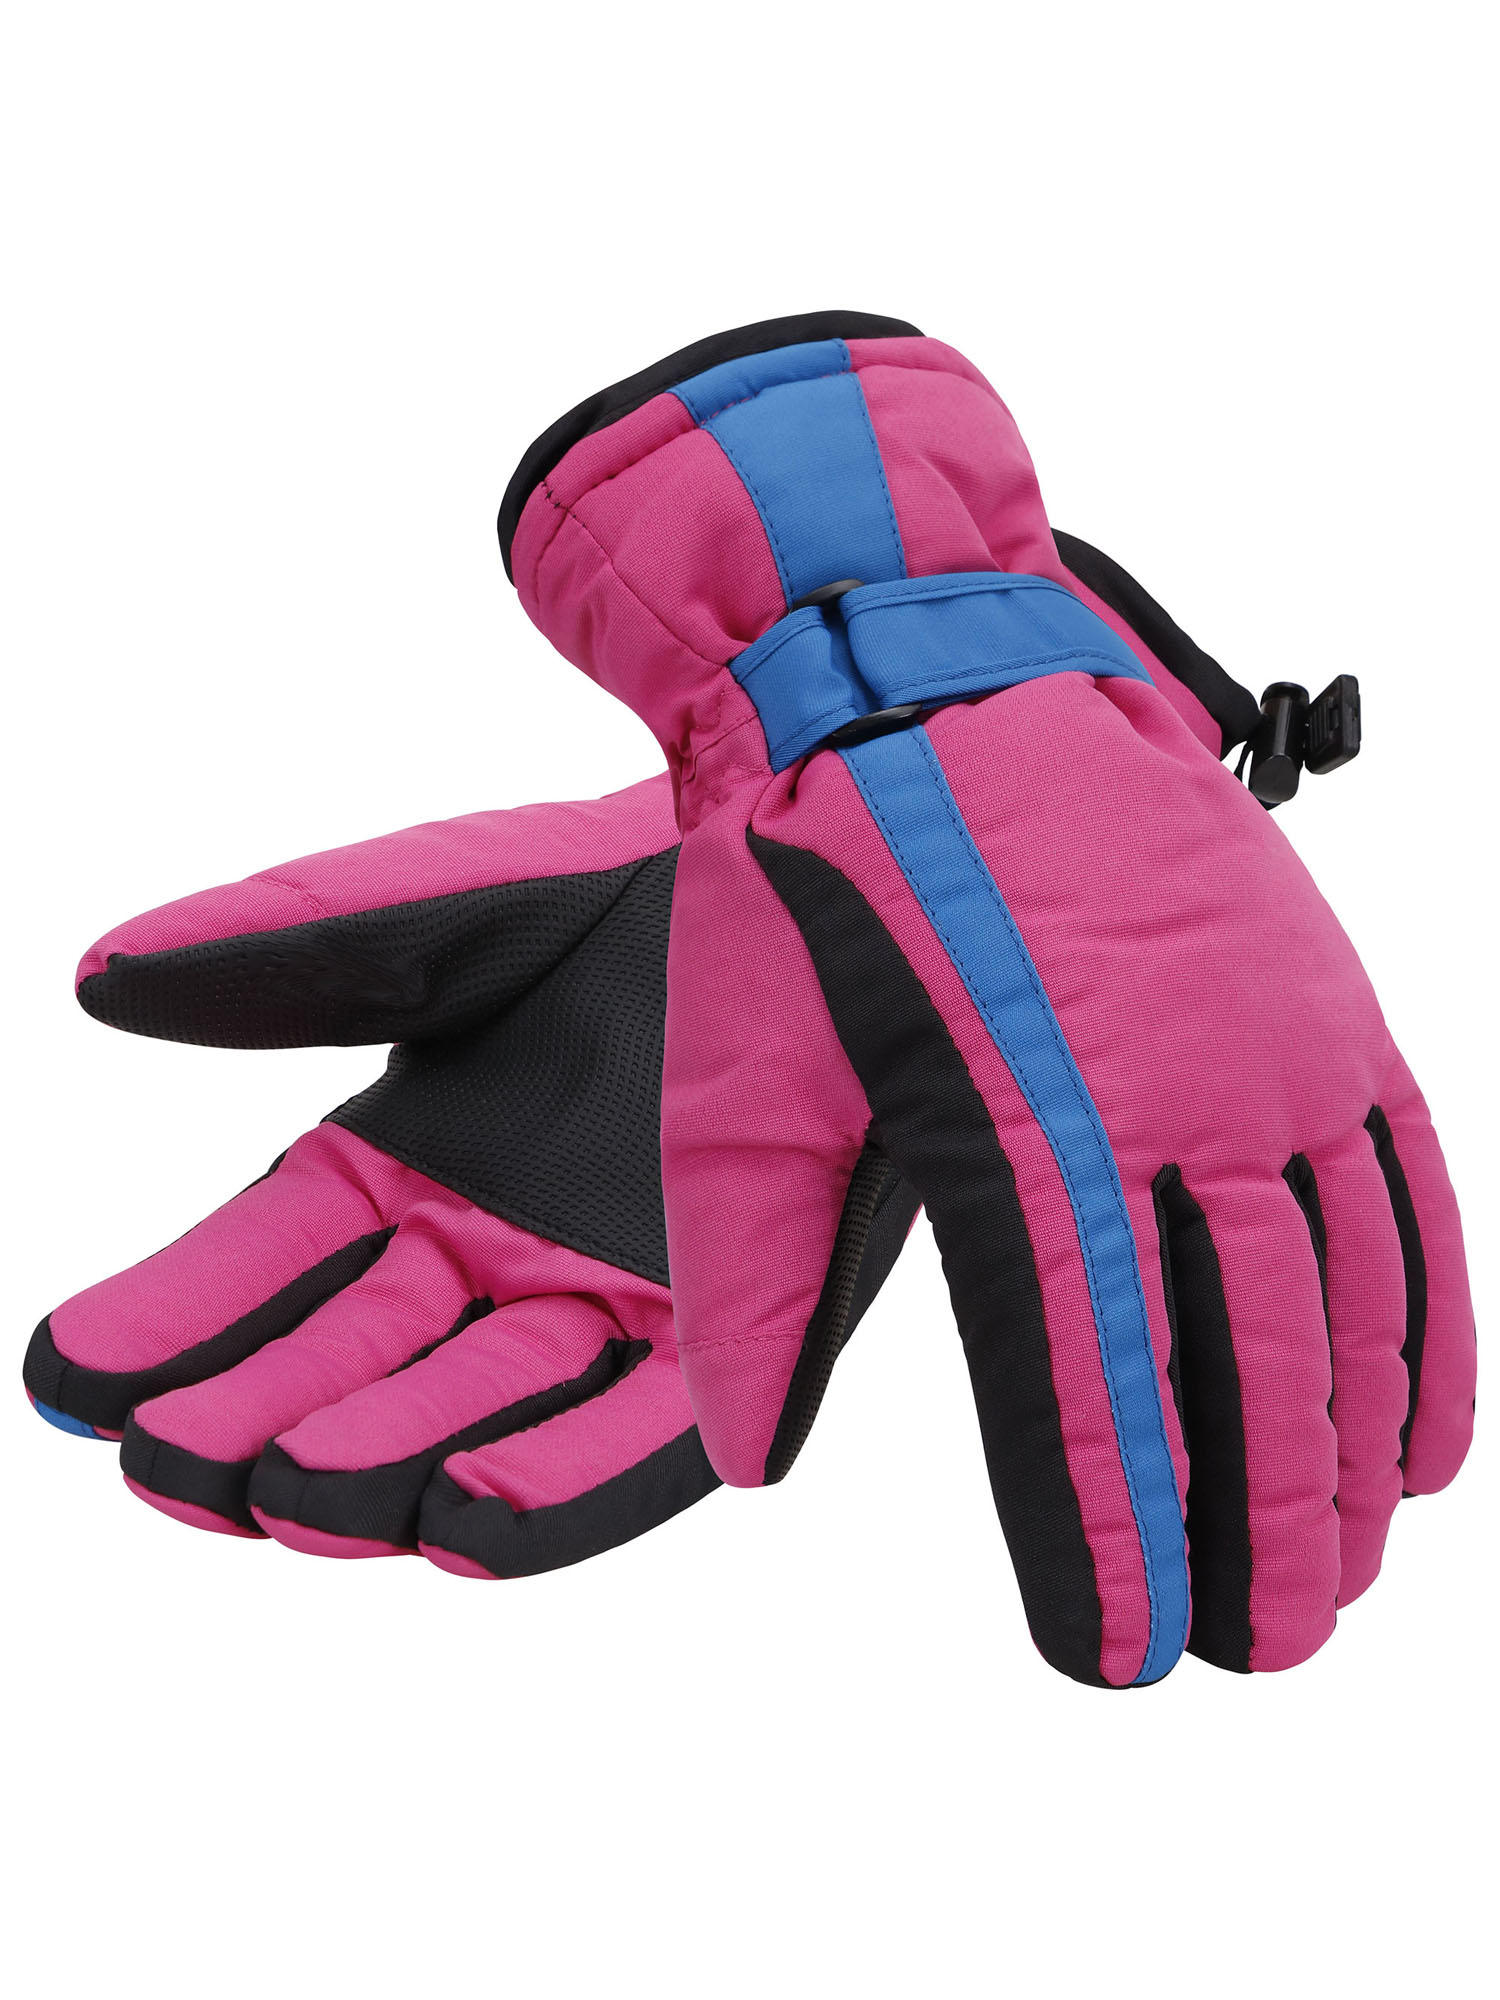 Women 3M Thinsulate Lined Waterproof Ski Gloves,S,Pink Blue